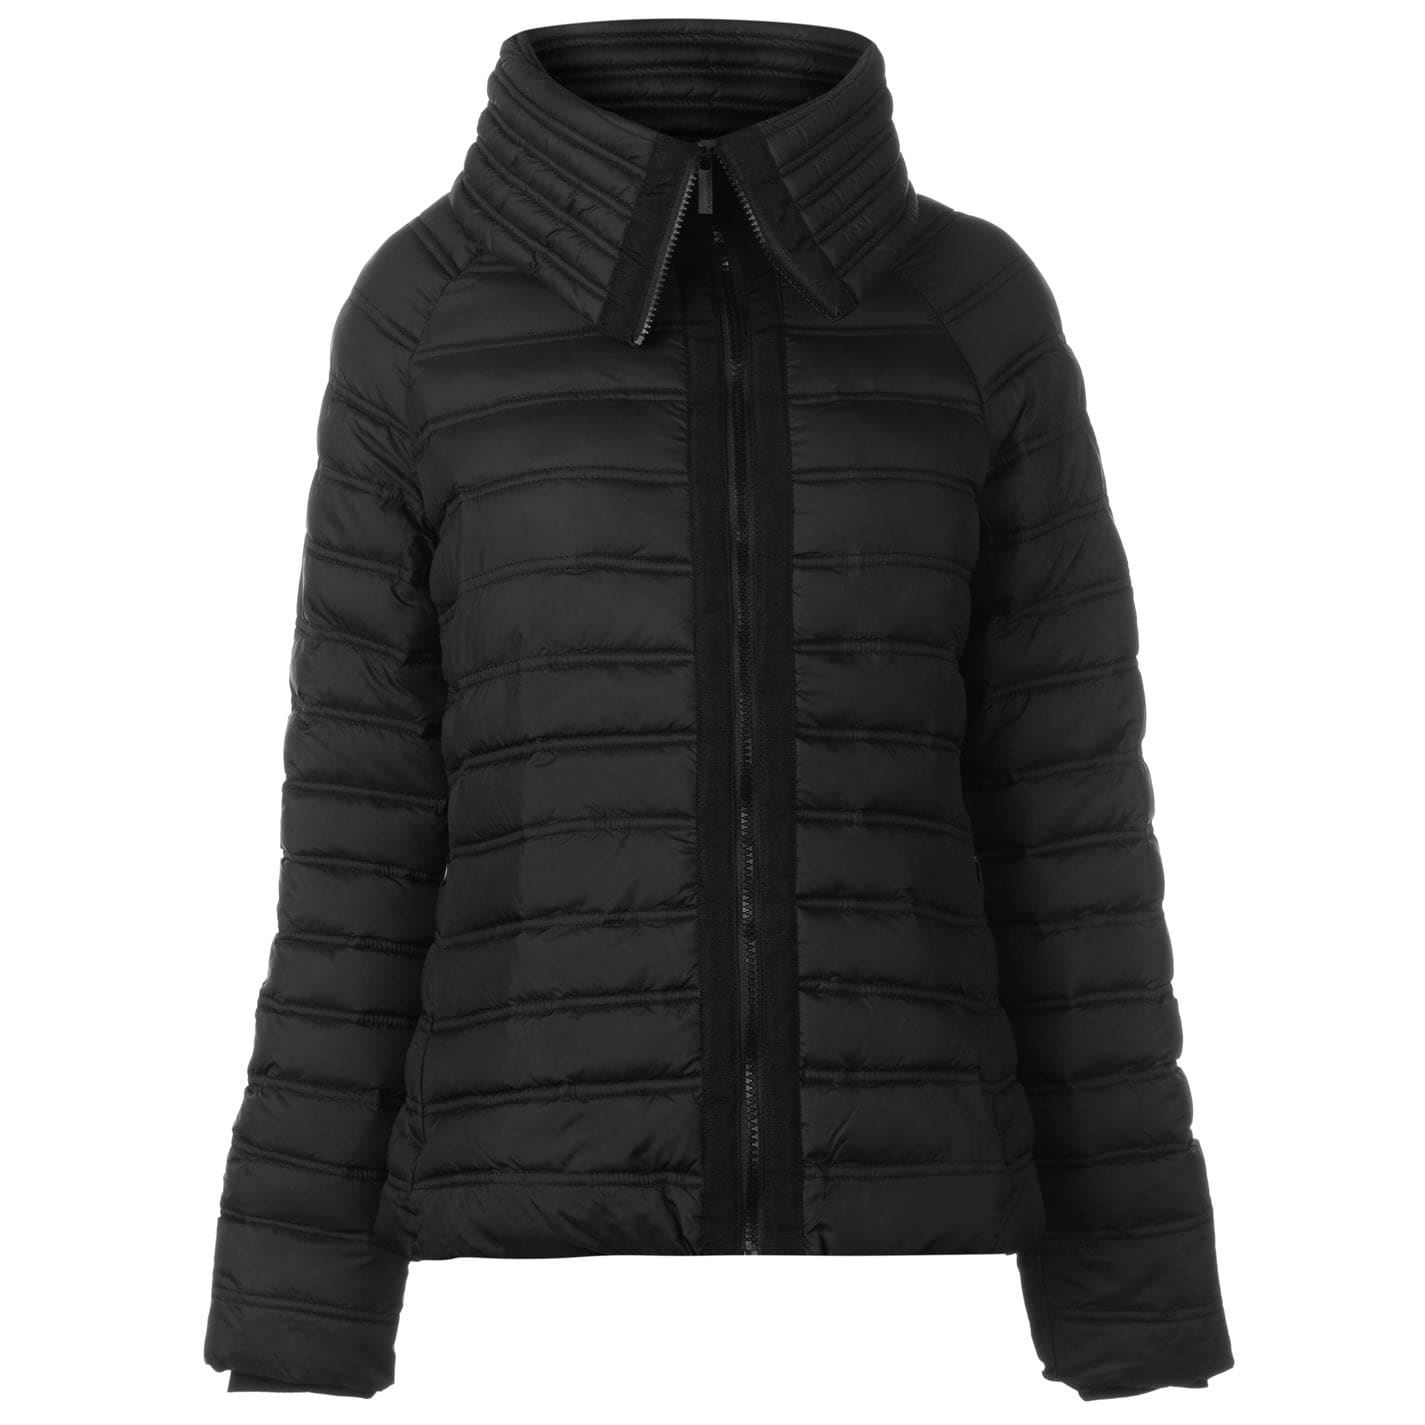 Craghoppers Womens//Ladies Moina ThermoElite Insulated Shell Jacket